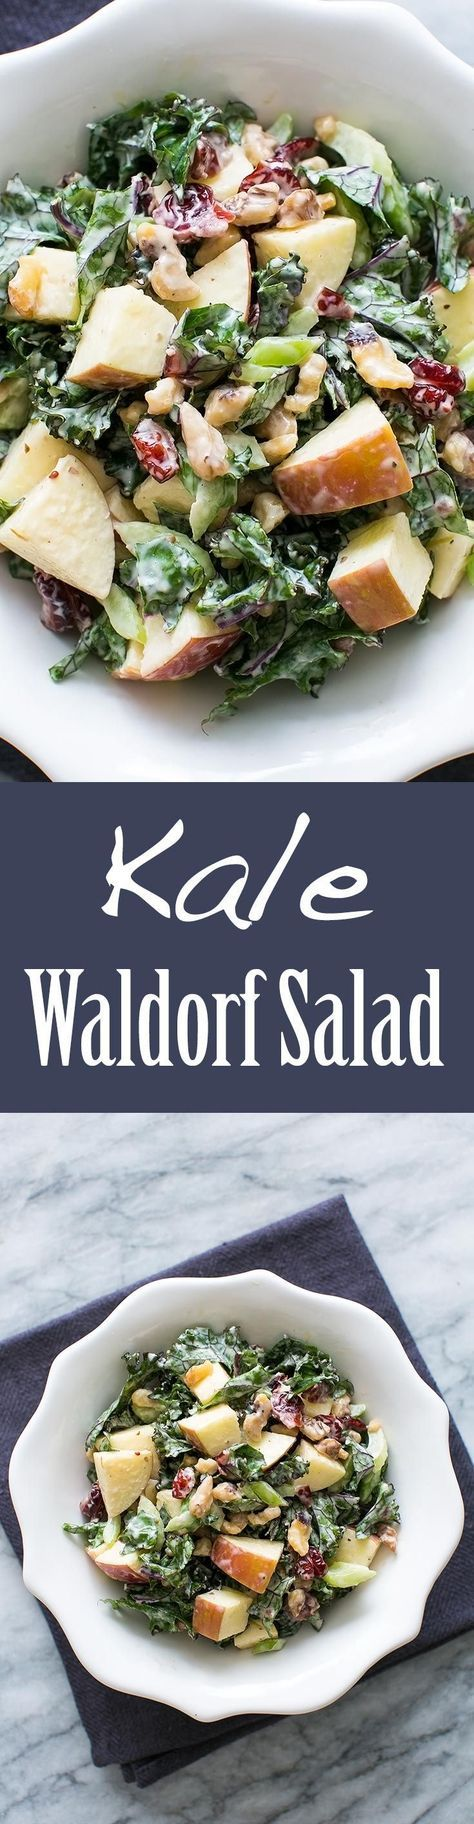 Kale Waldorf Salad - with apples, celery, walnuts, dried cranberries, and tangy mayo dressing. | Simply Recipes